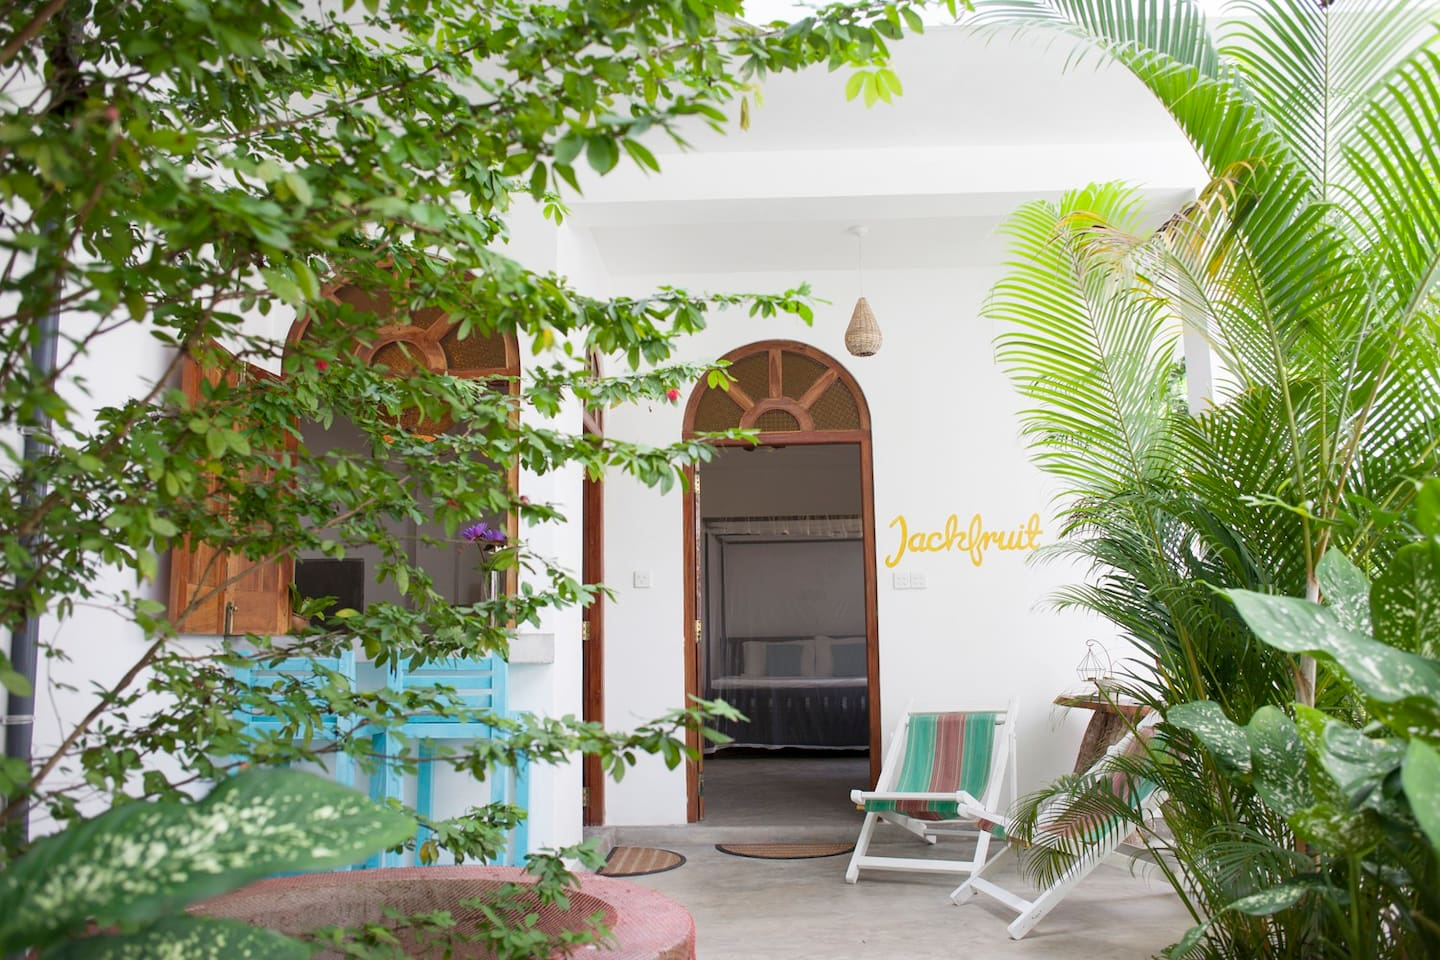 Jackfruit apartment with its private terrace and kitchen, set in a tropical jungly garden to enjoy